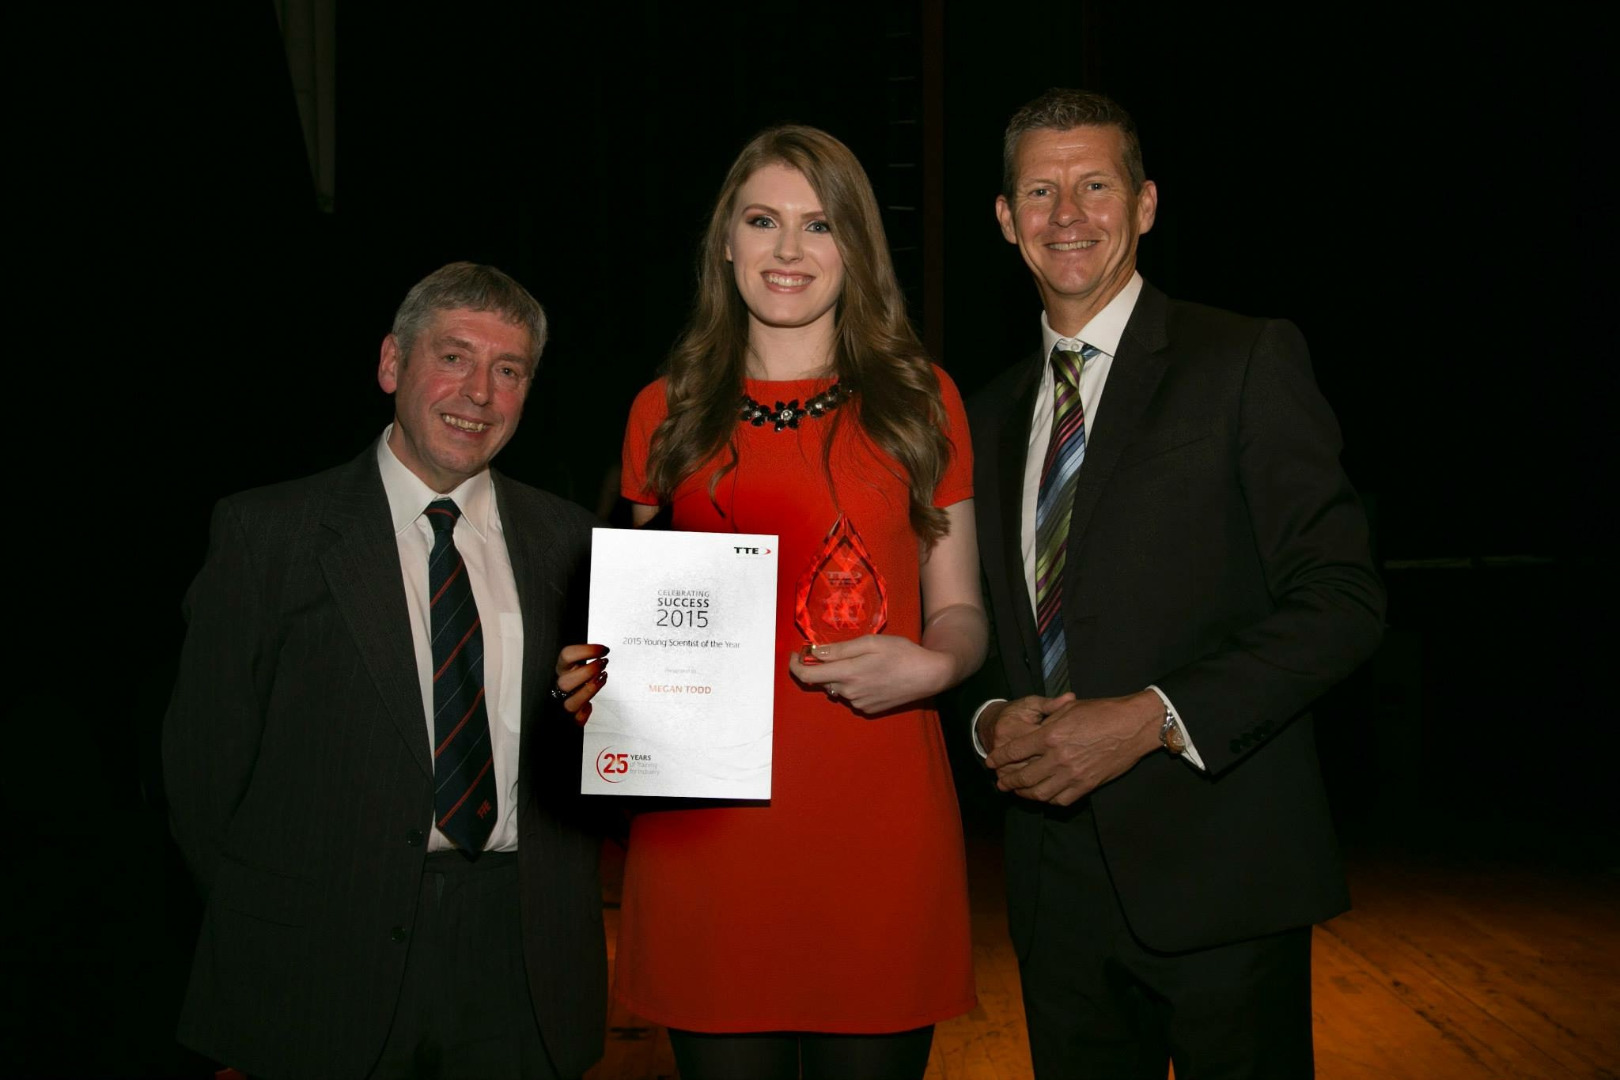 Photo of Megan recieving an award